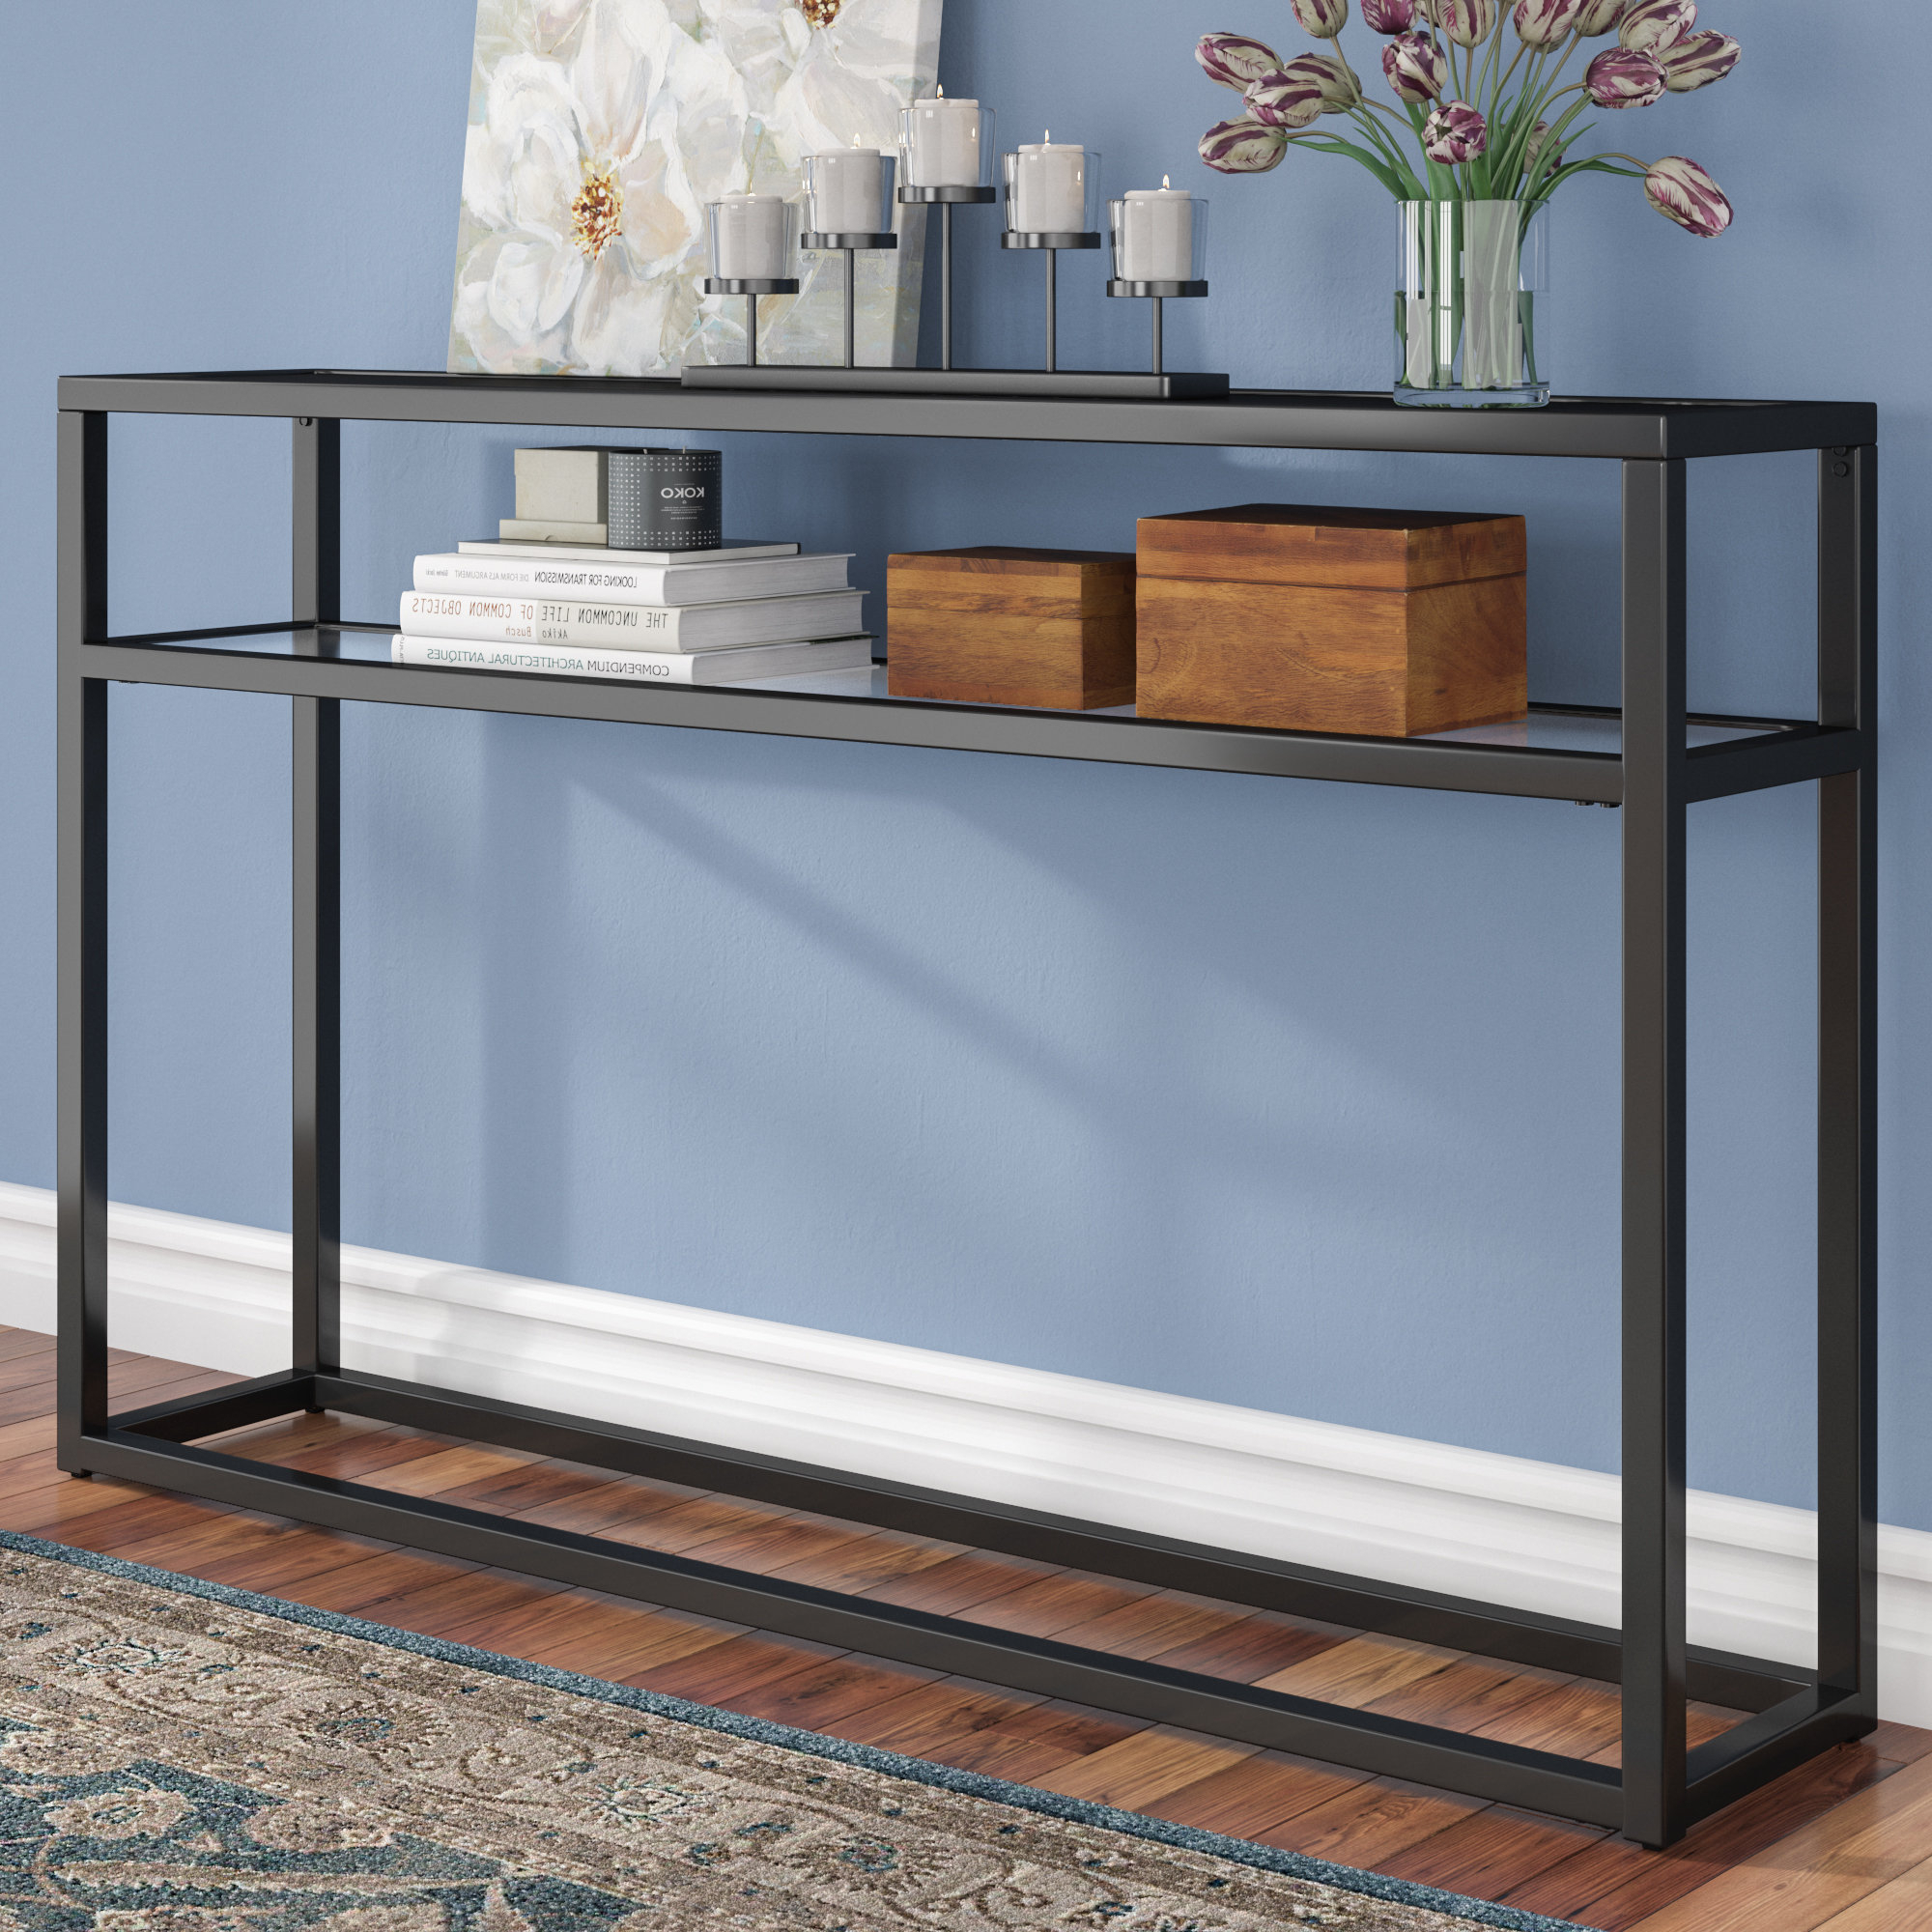 Narrow Low Console Table | Wayfair Inside Layered Wood Small Square Console Tables (View 5 of 20)